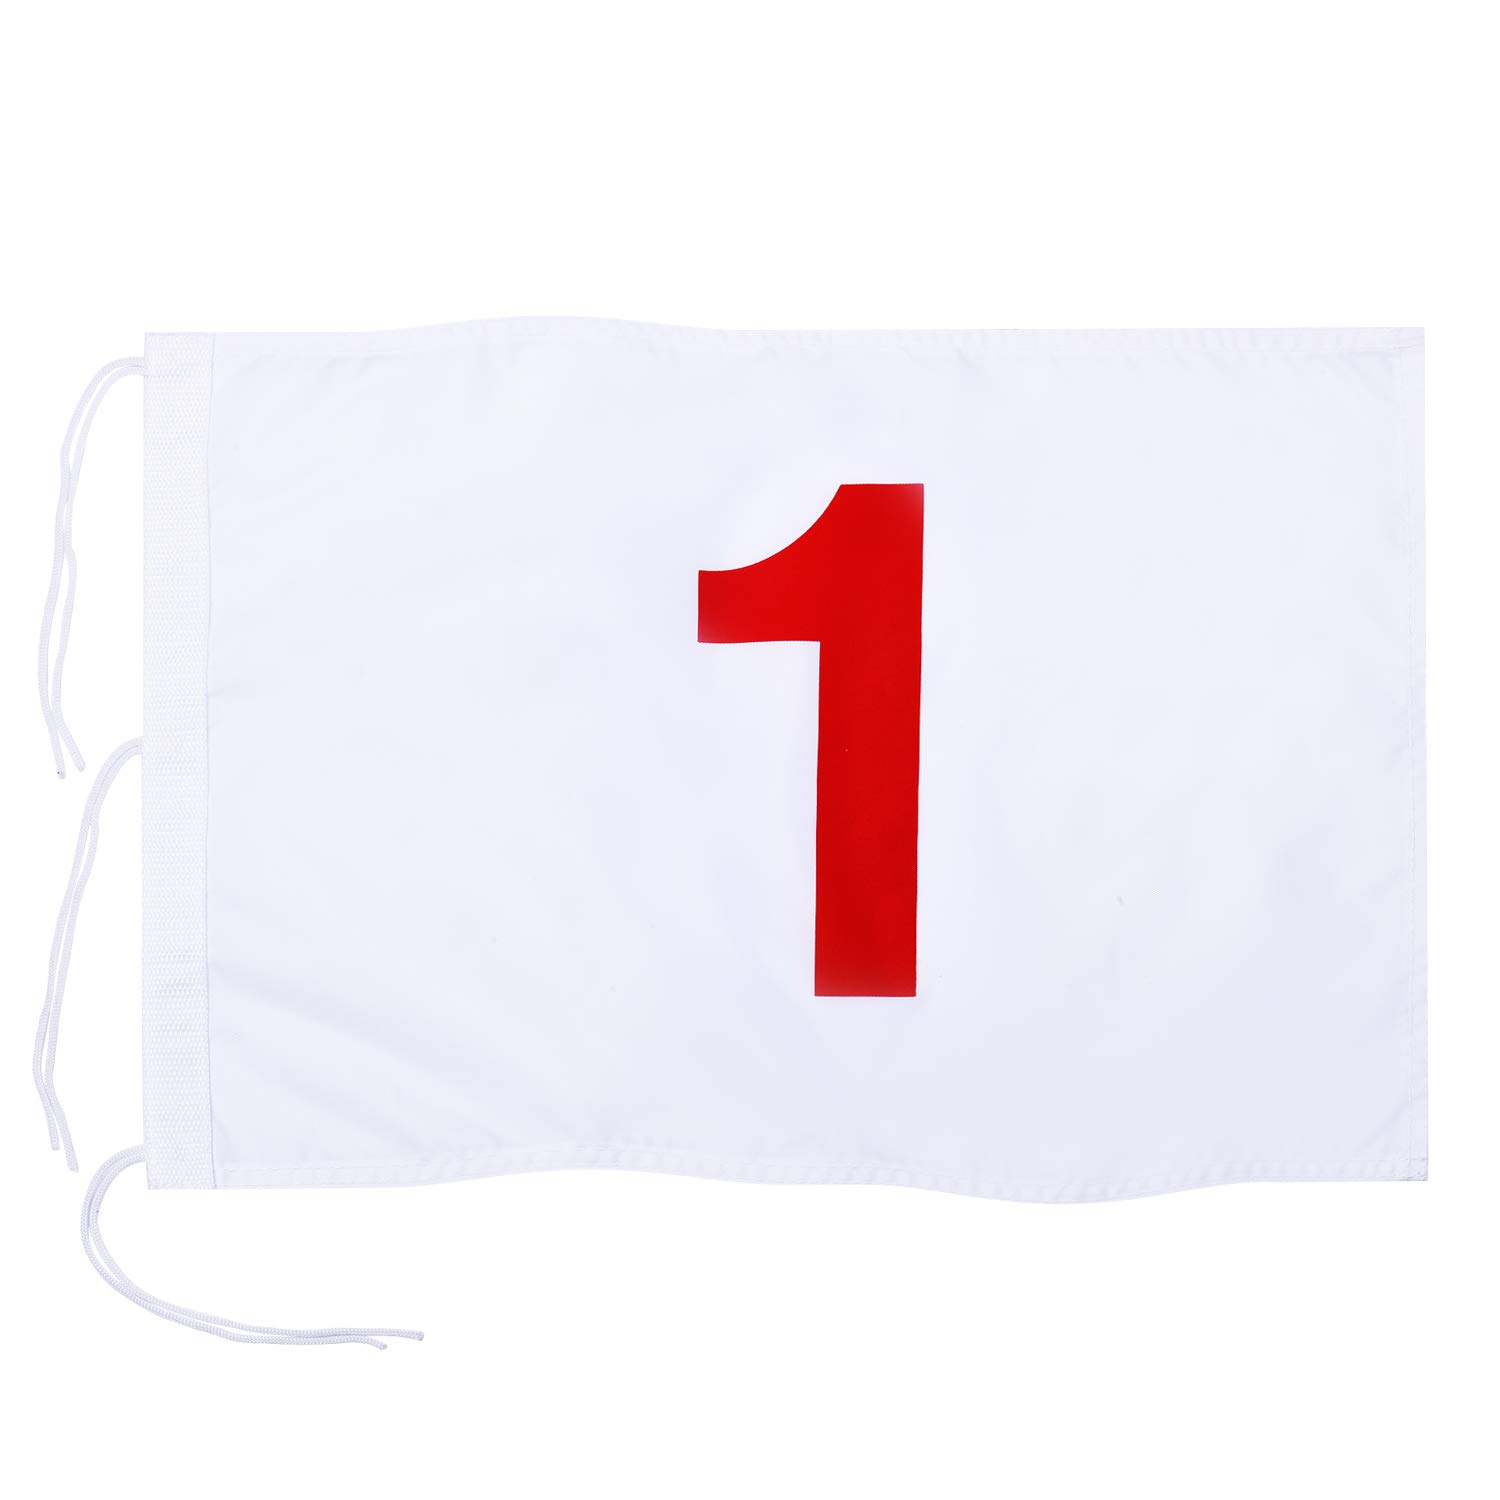 KINGTOP Numbered Golf Flag with Secure Strings, 13'' L x 20'' W, 420D Nylon, White 1 by KINGTOP